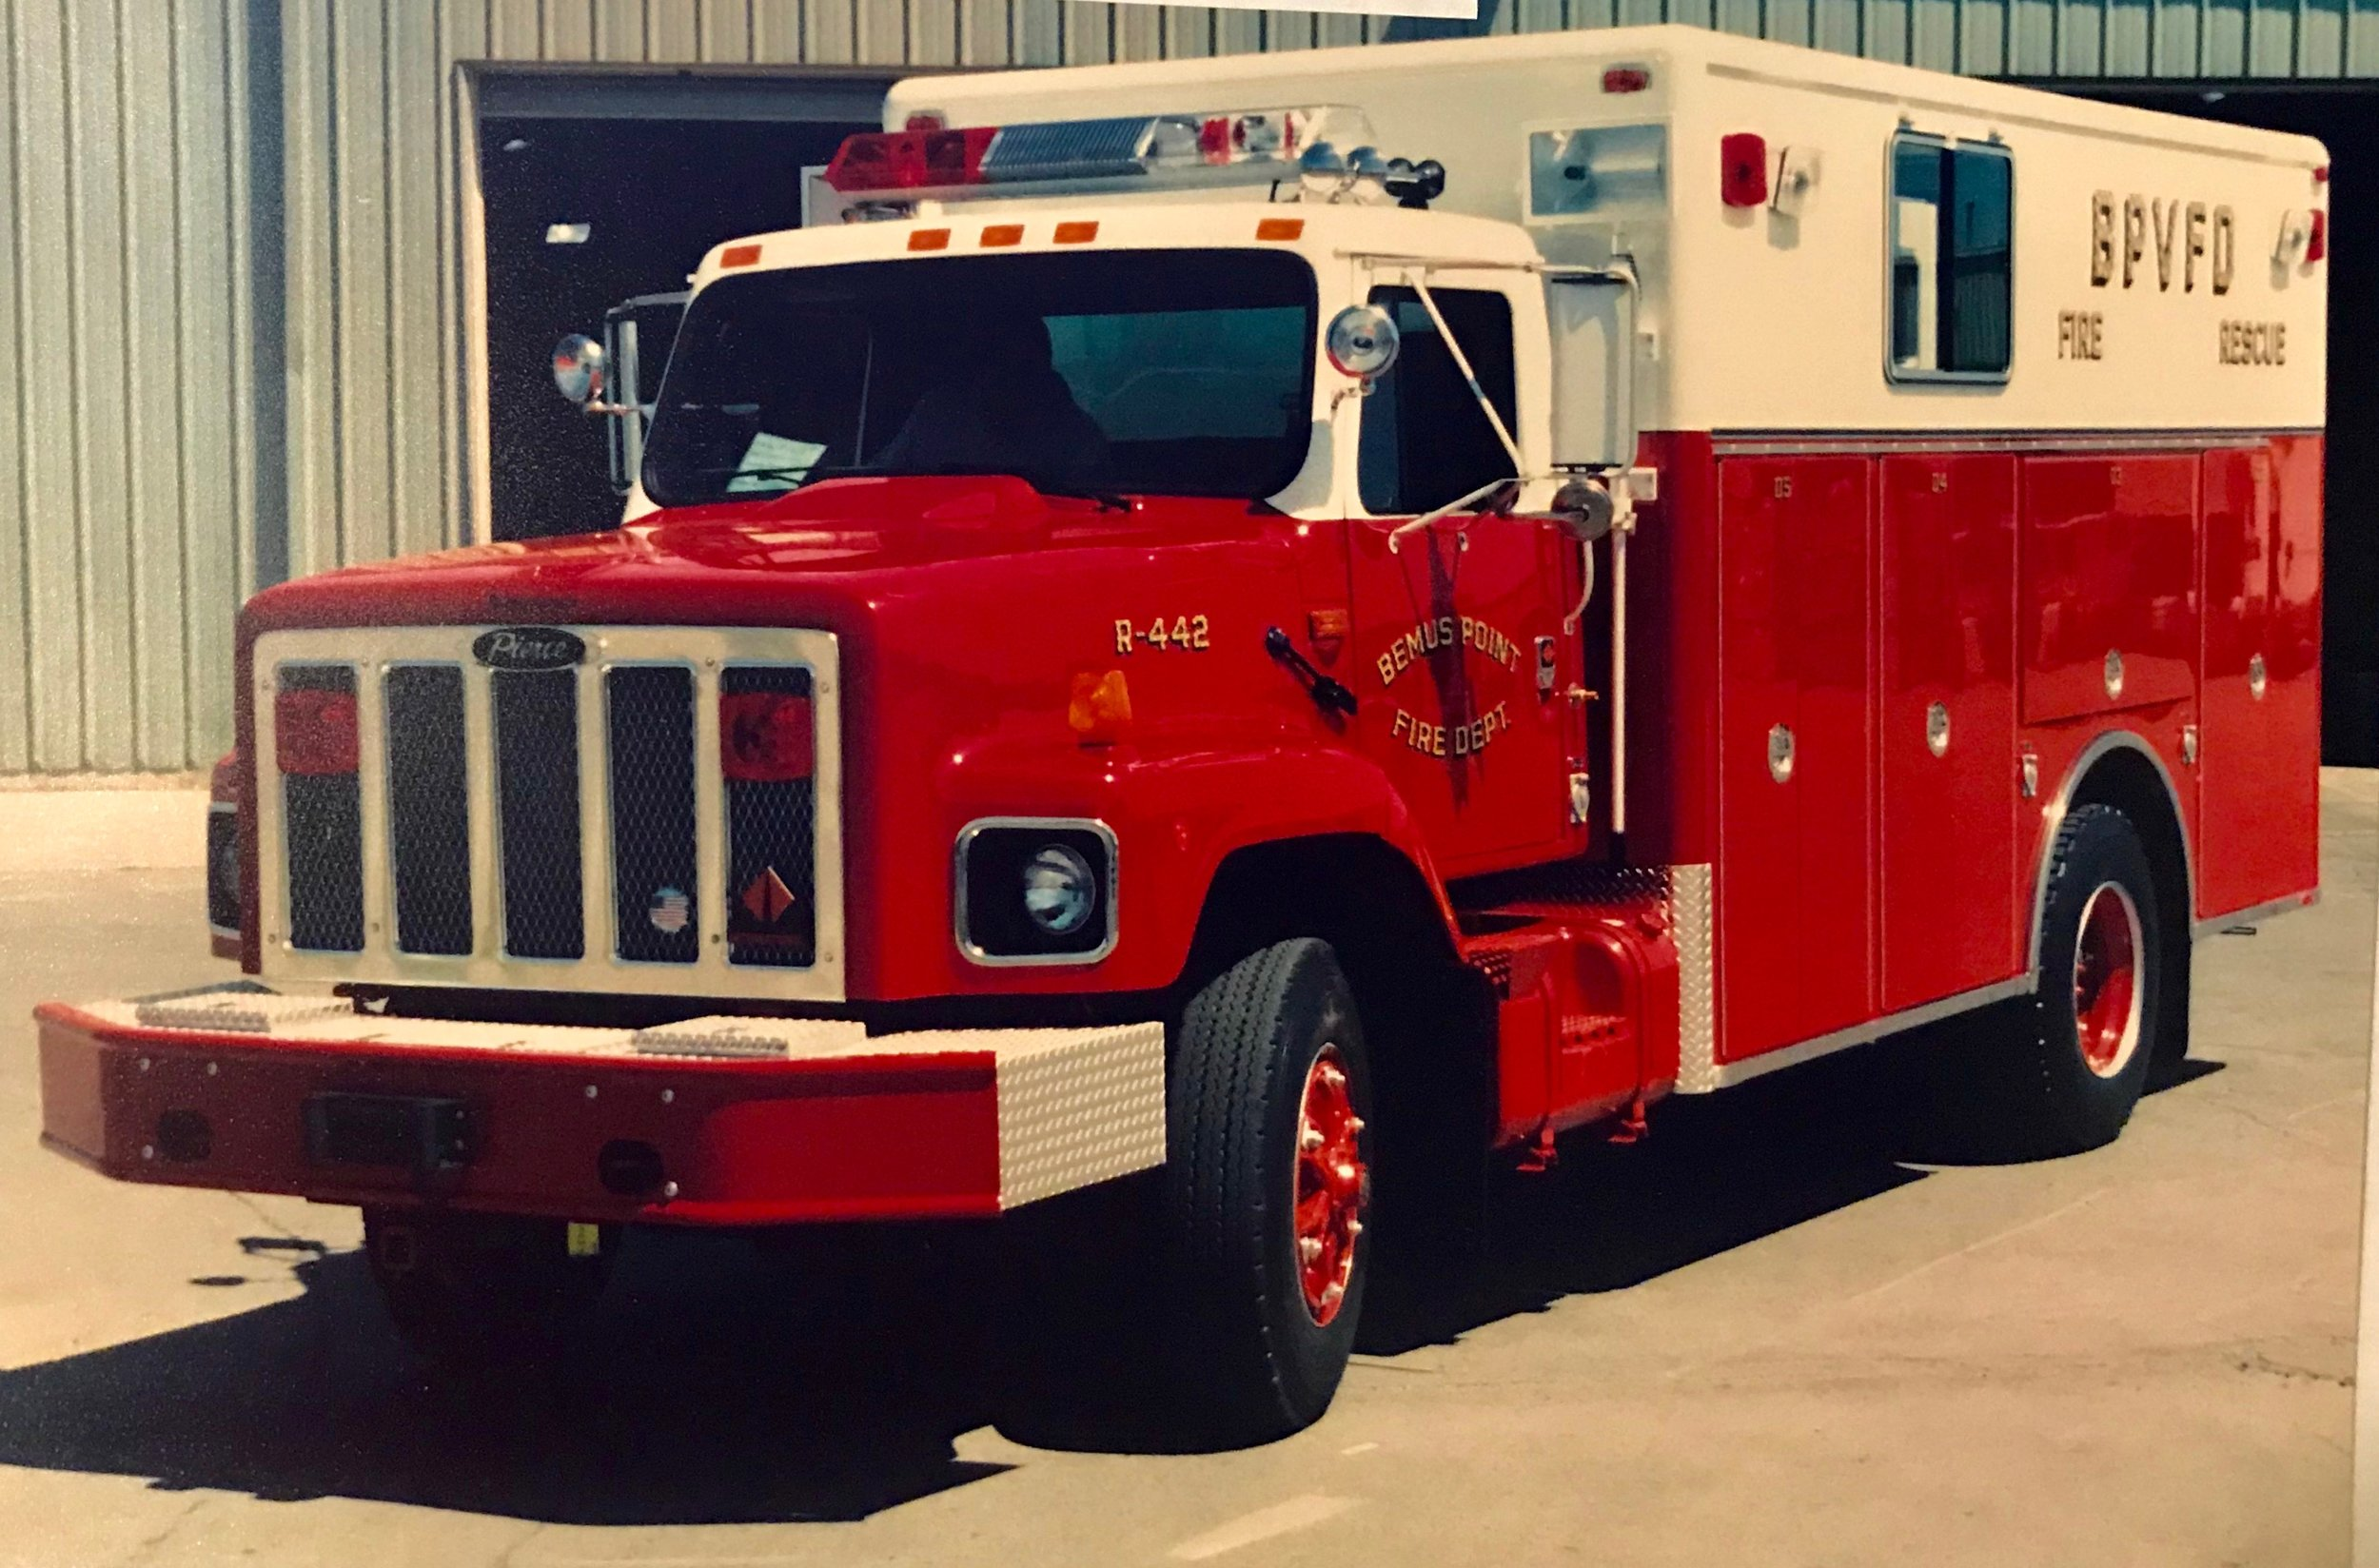 - 1991 International / Pierce Heavy Rescue R-442 Self-contained equipment carrying truck with onboard generator. Powered by a Cummins L-10 279 HP engine, it replaced the 1973 panel van.In service